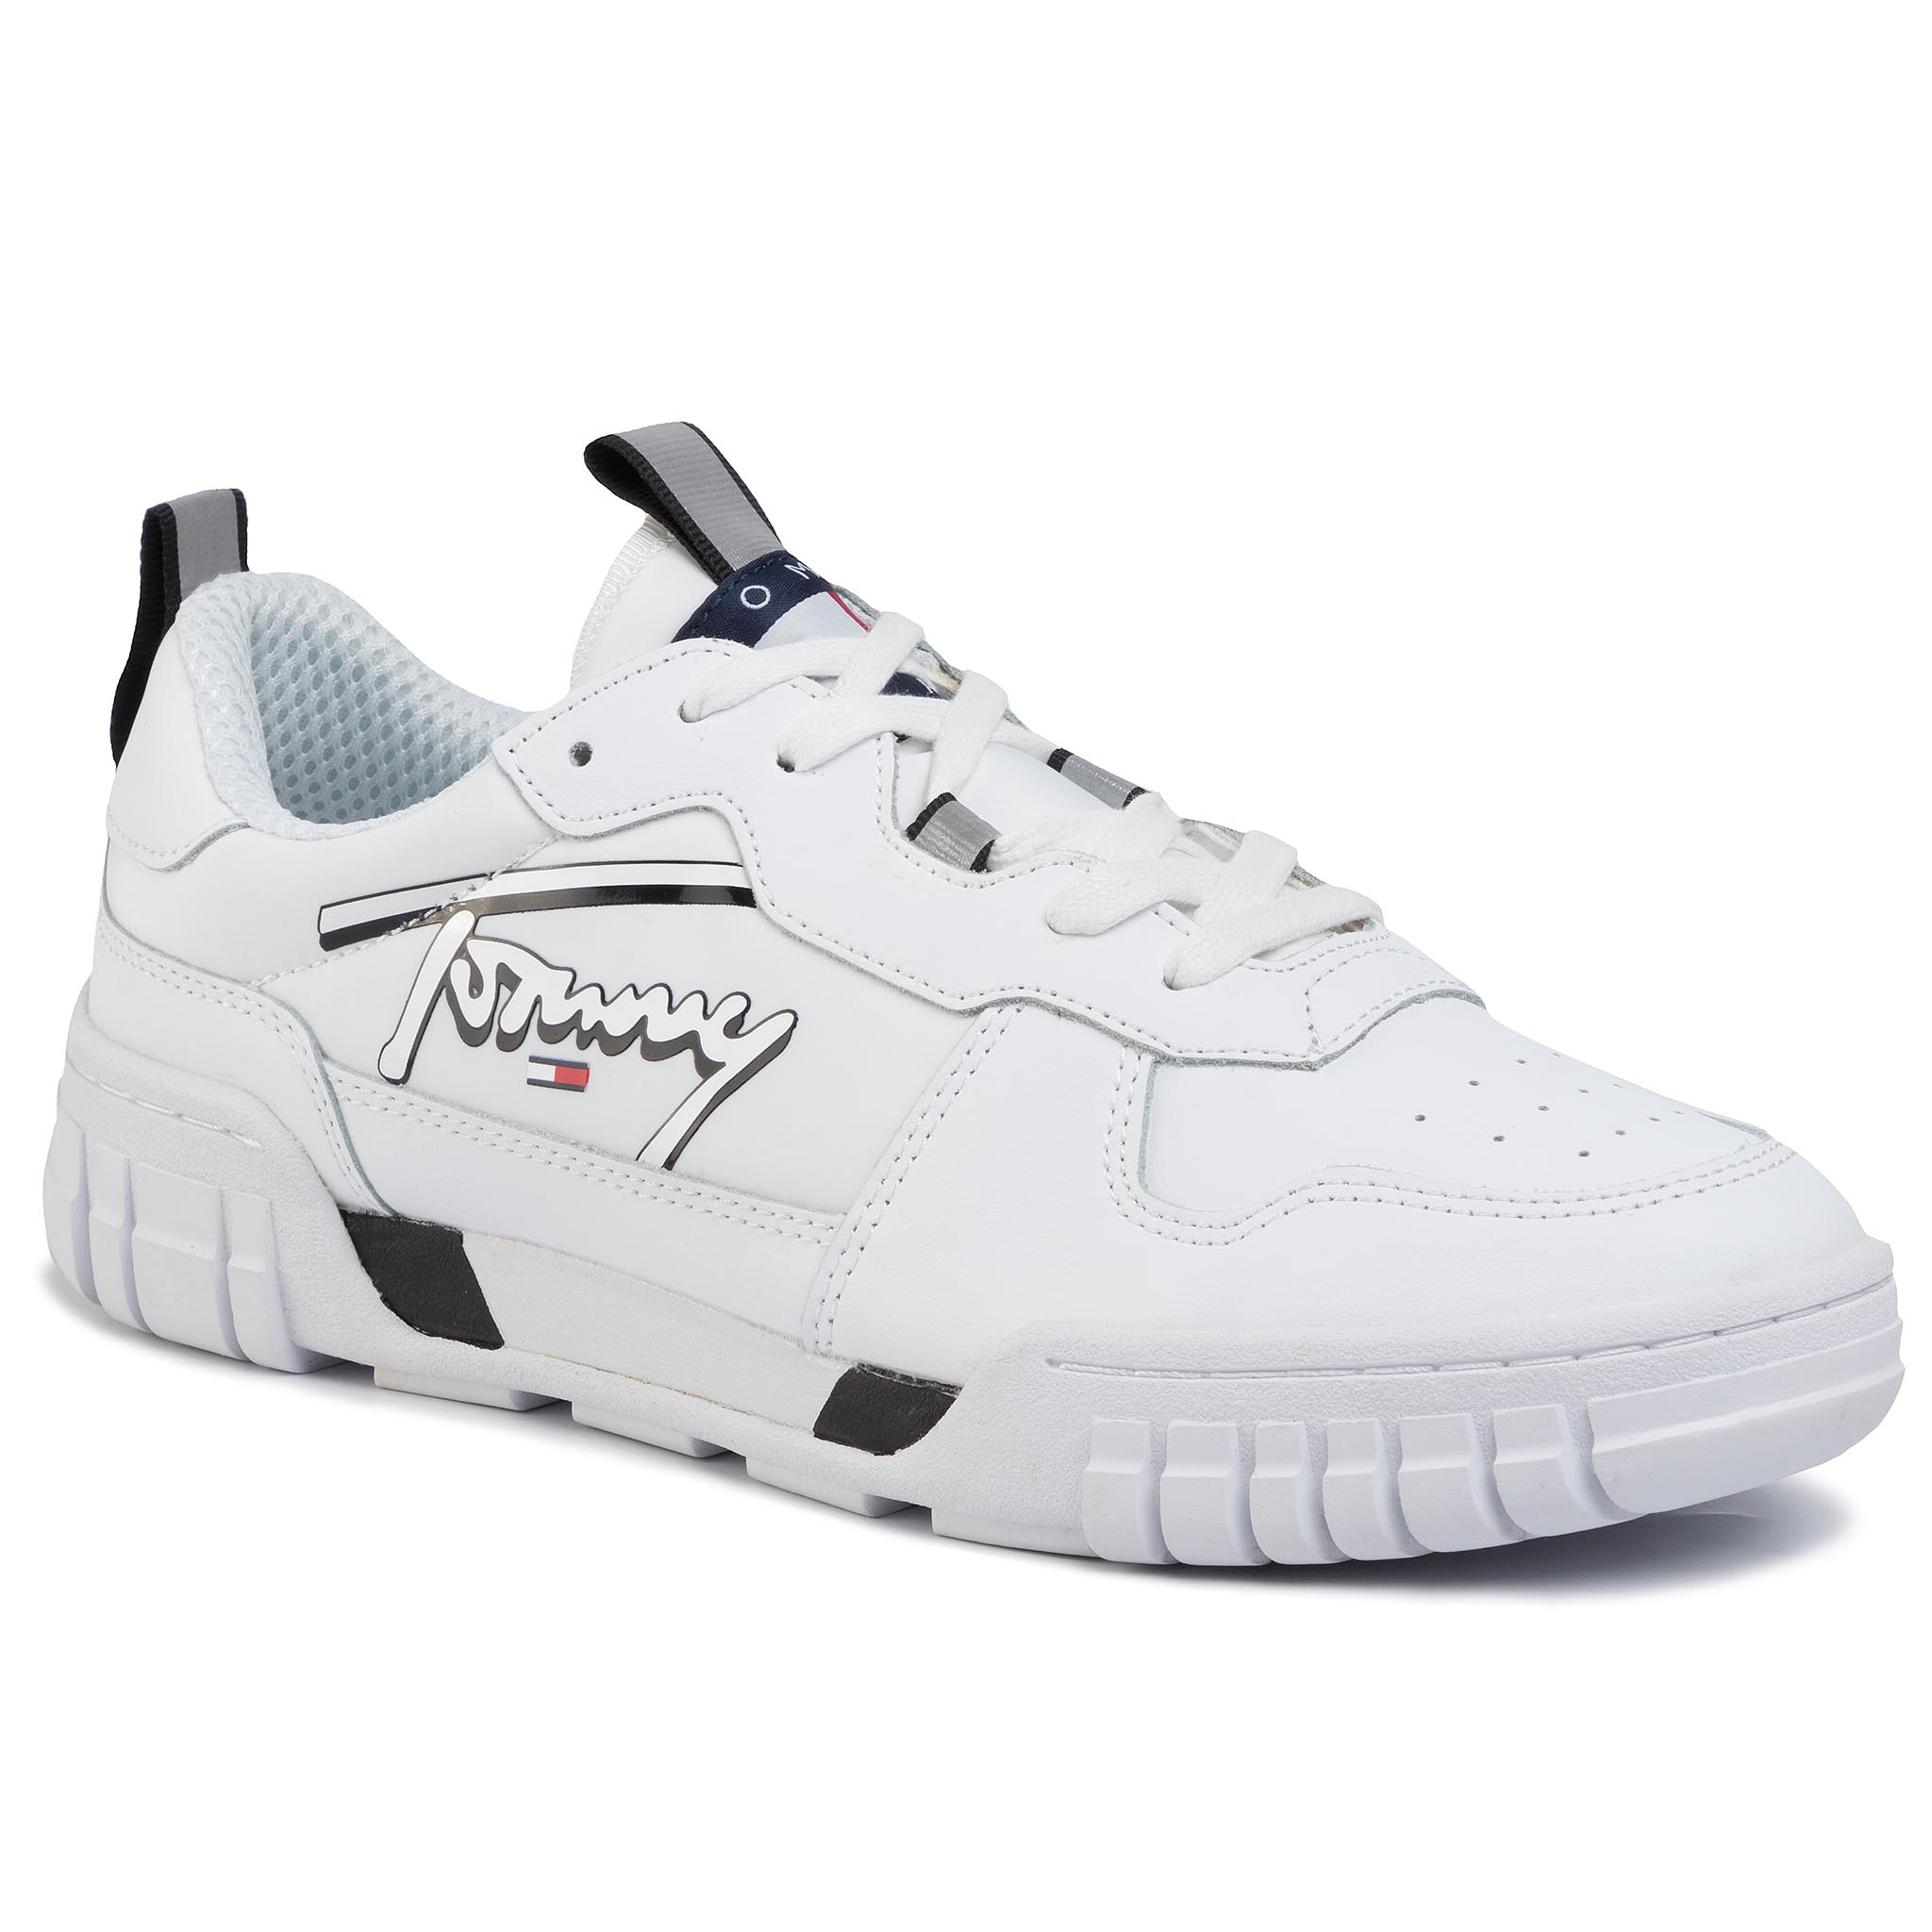 Sneakers TOMMY JEANS - Signature Sneaker EM0EM00319 White YBS